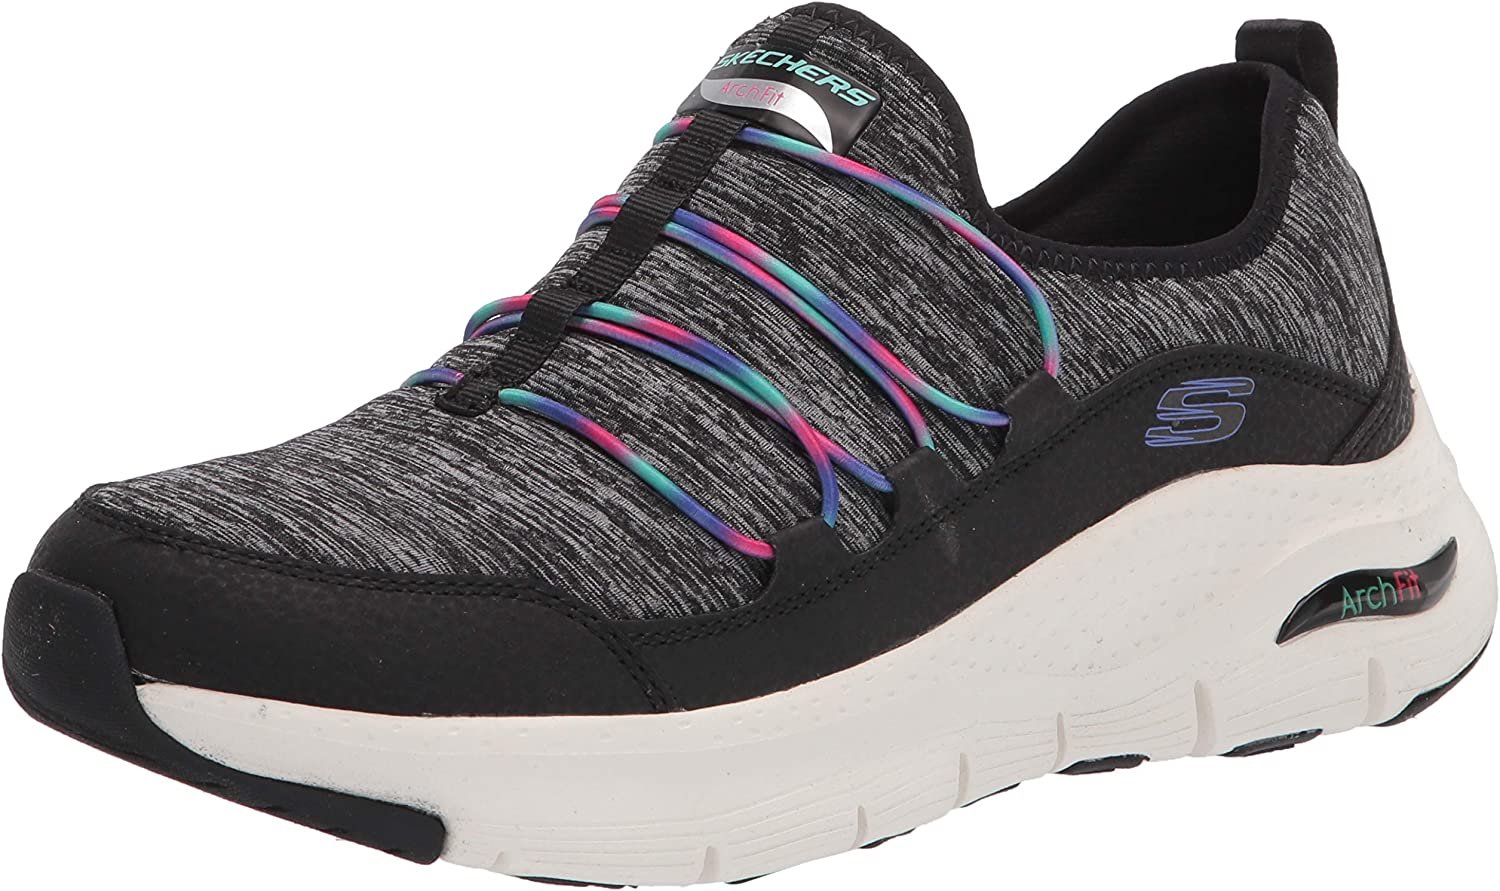 Skechers Women's Arch Milwaukee Mall Fit-Rainbow Max 55% OFF Sneaker View